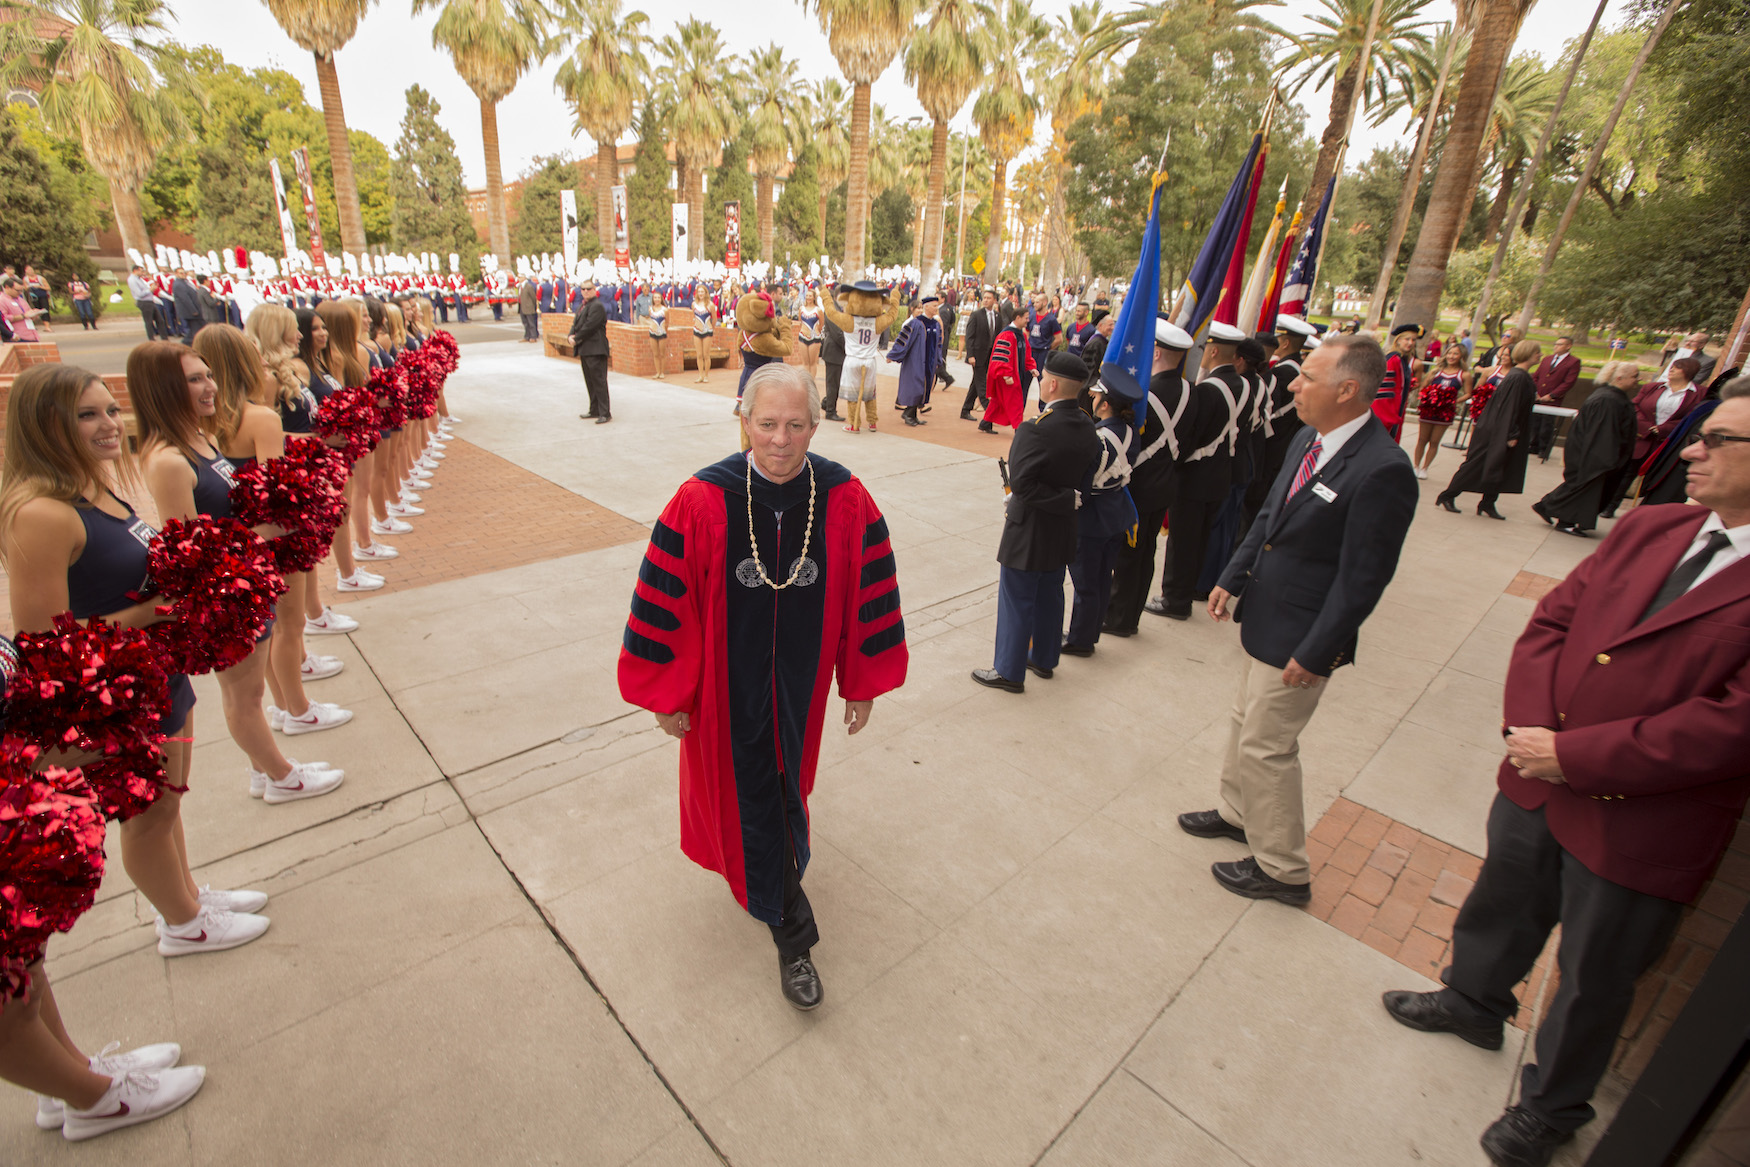 Dr. Robbins follows the Procession into Centennial Hall